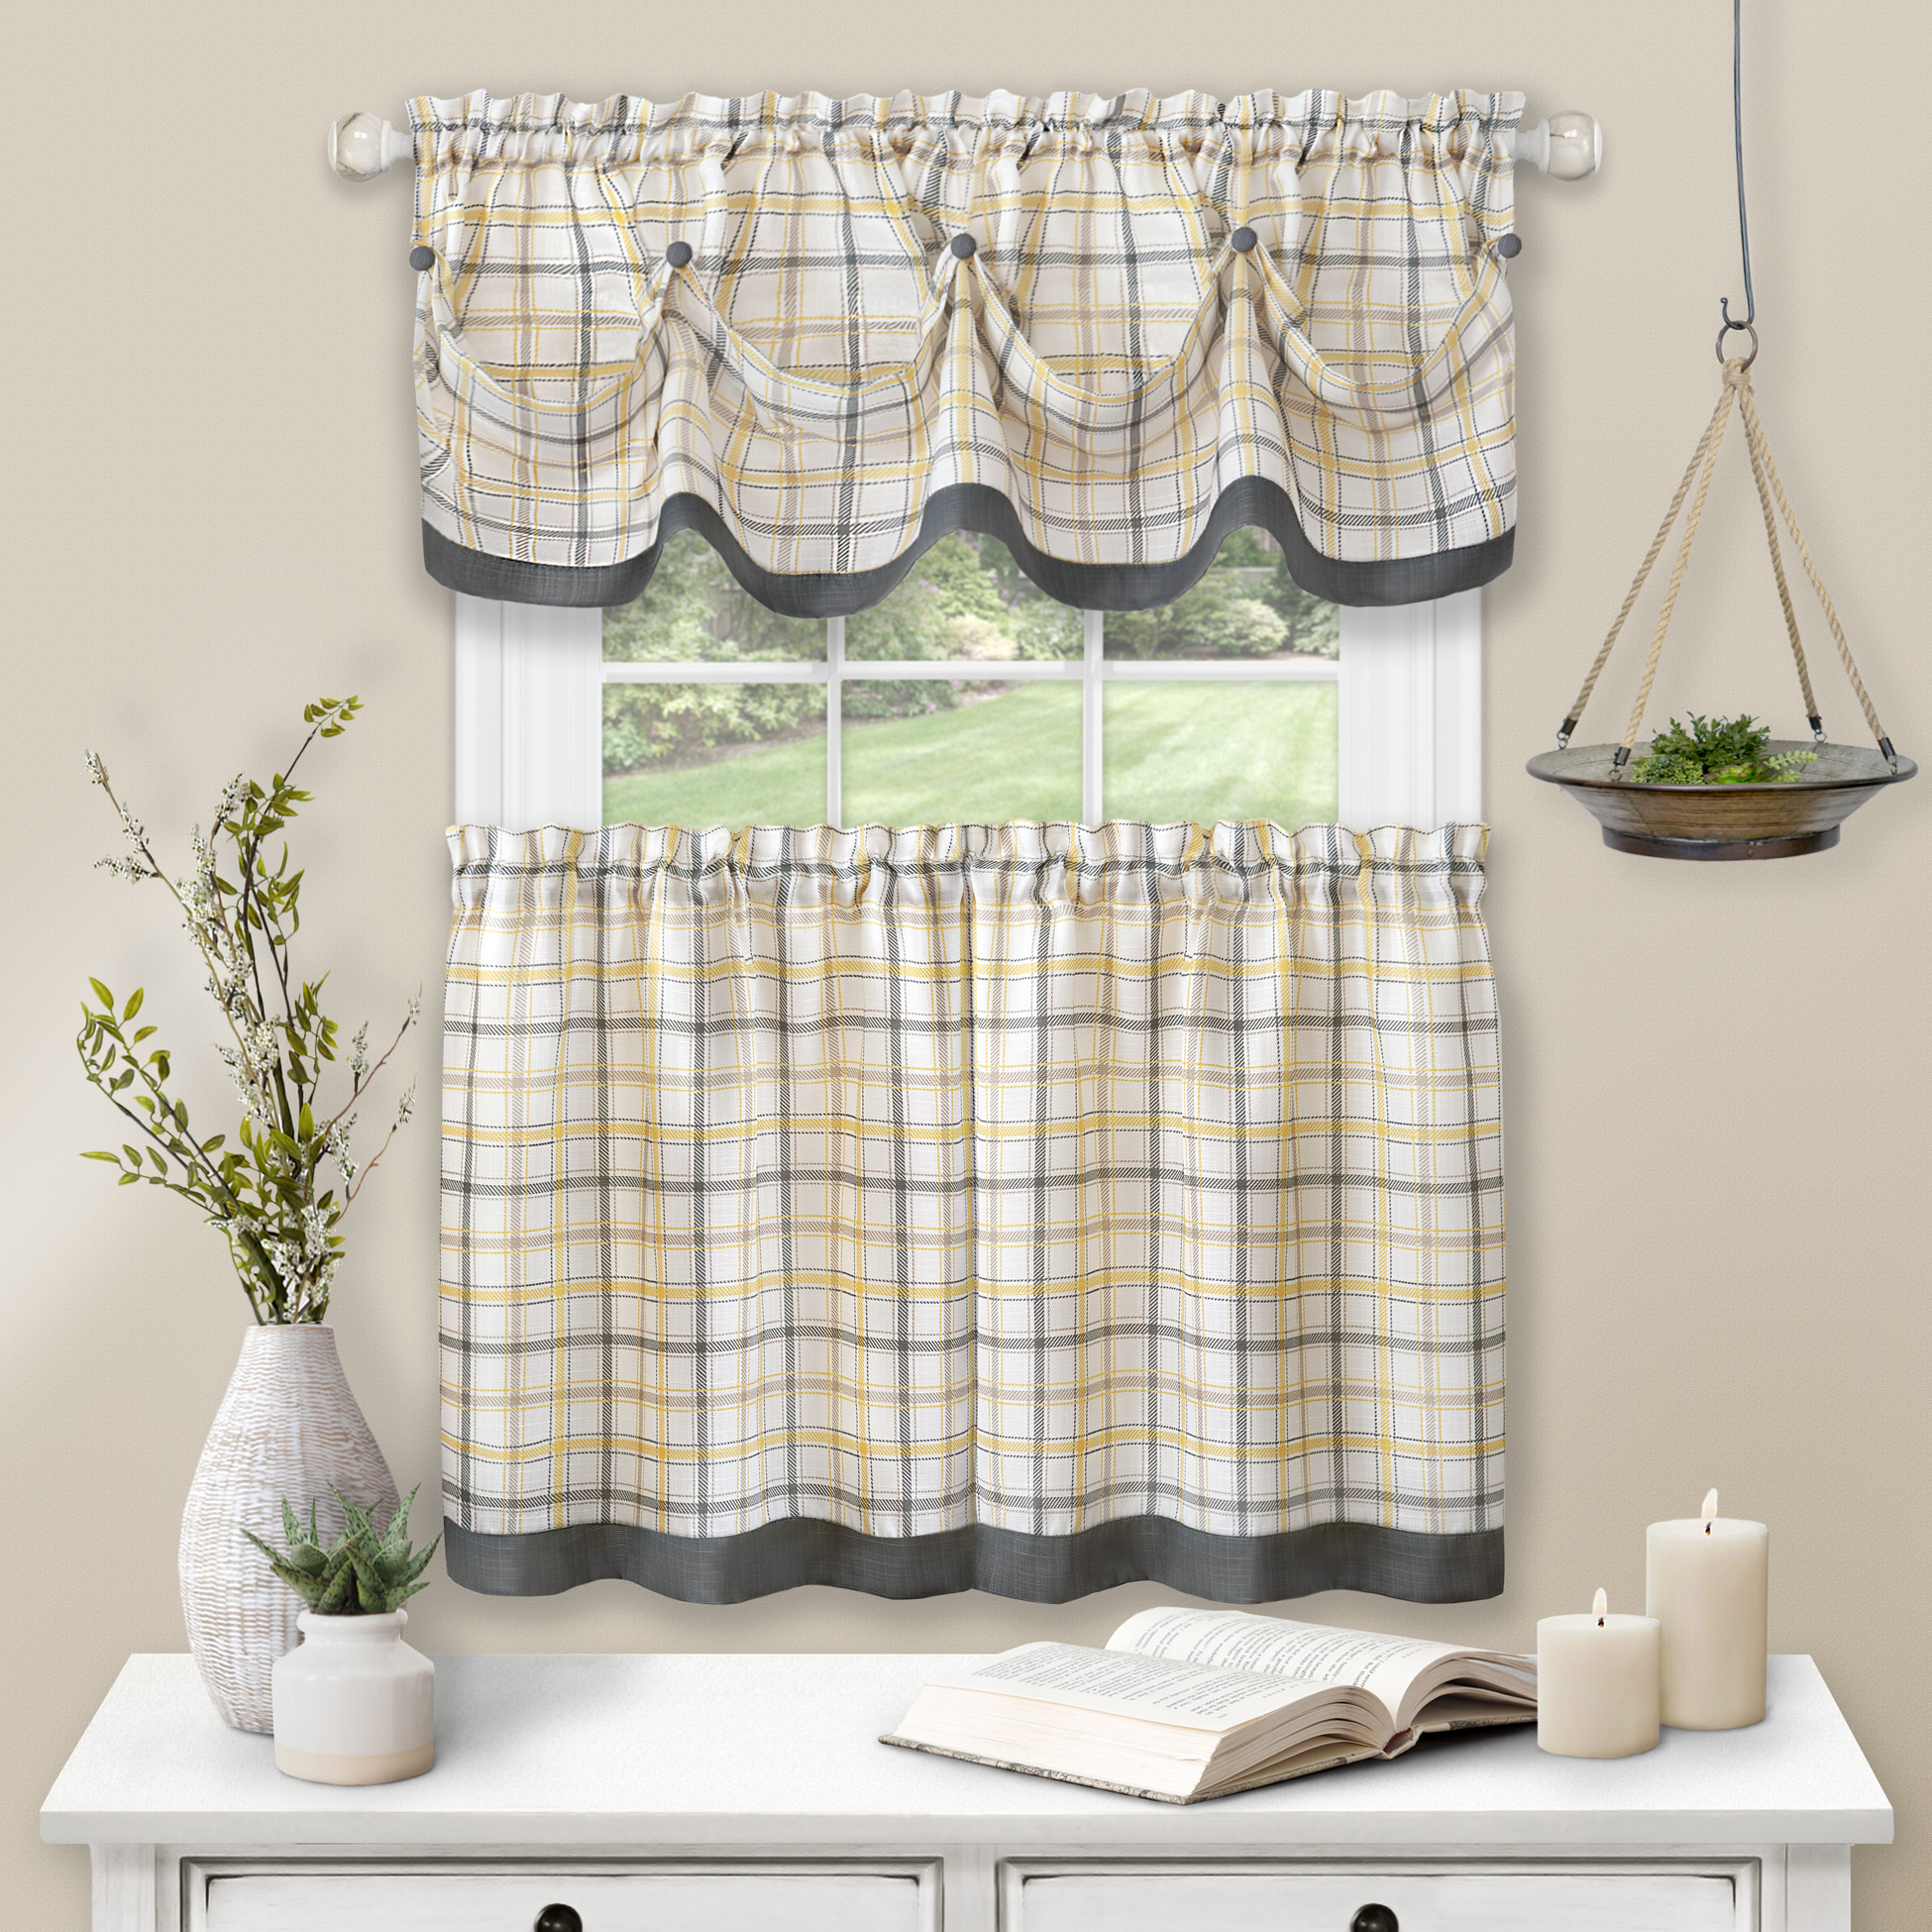 Gray Plaid Gingham Tab Top 3 Piece Window Kitchen Curtains Drapes With Valance Ebay